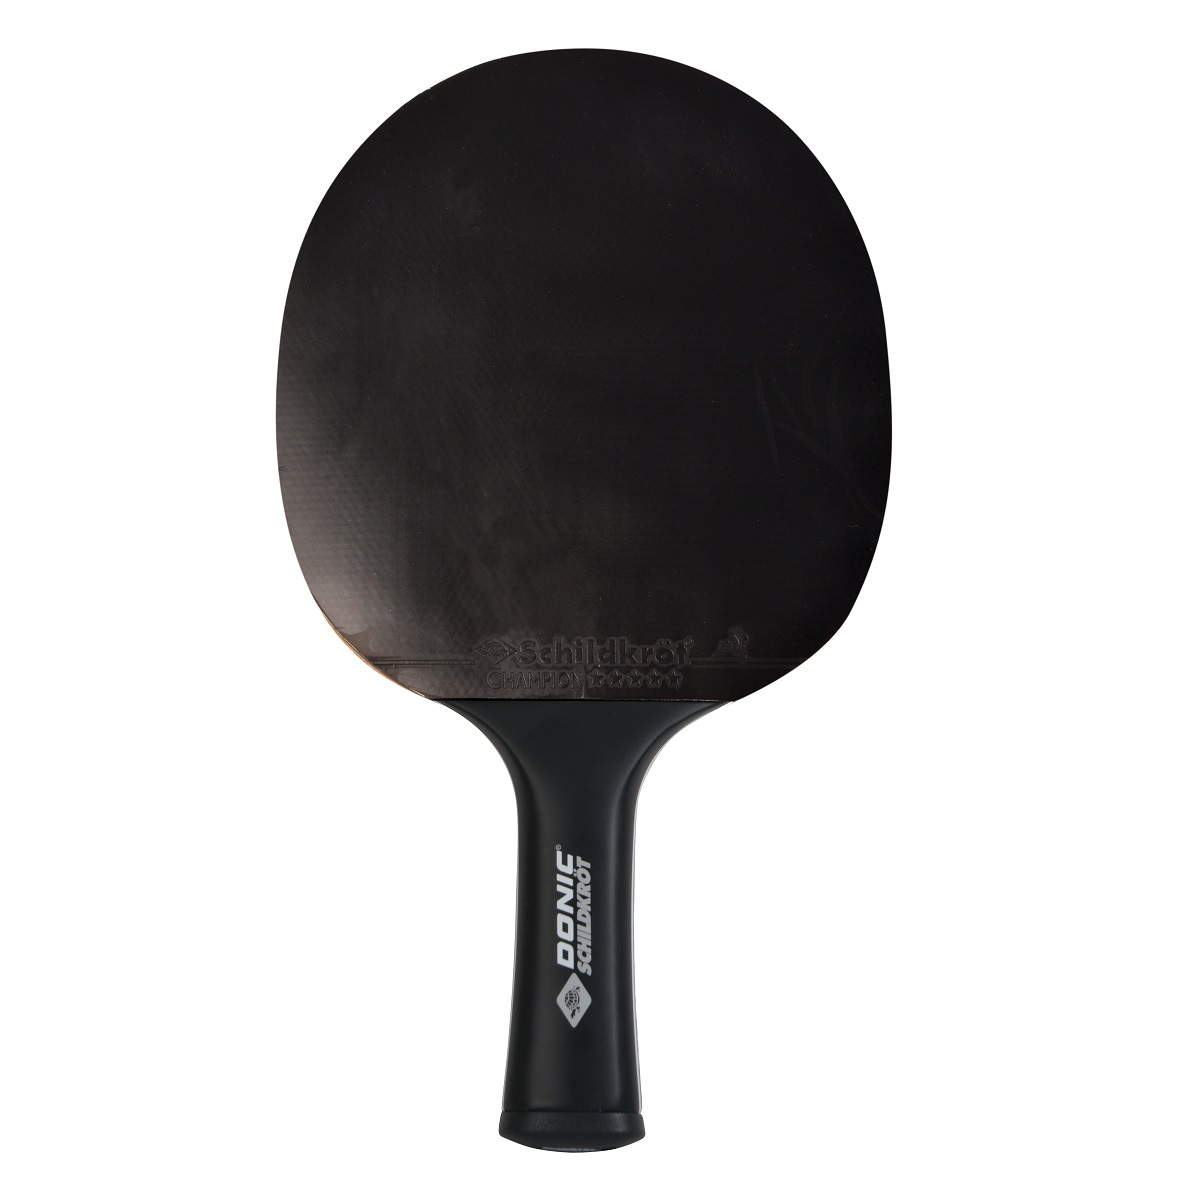 Pálka na stolní tenis DONIC CarboTec 900 concave